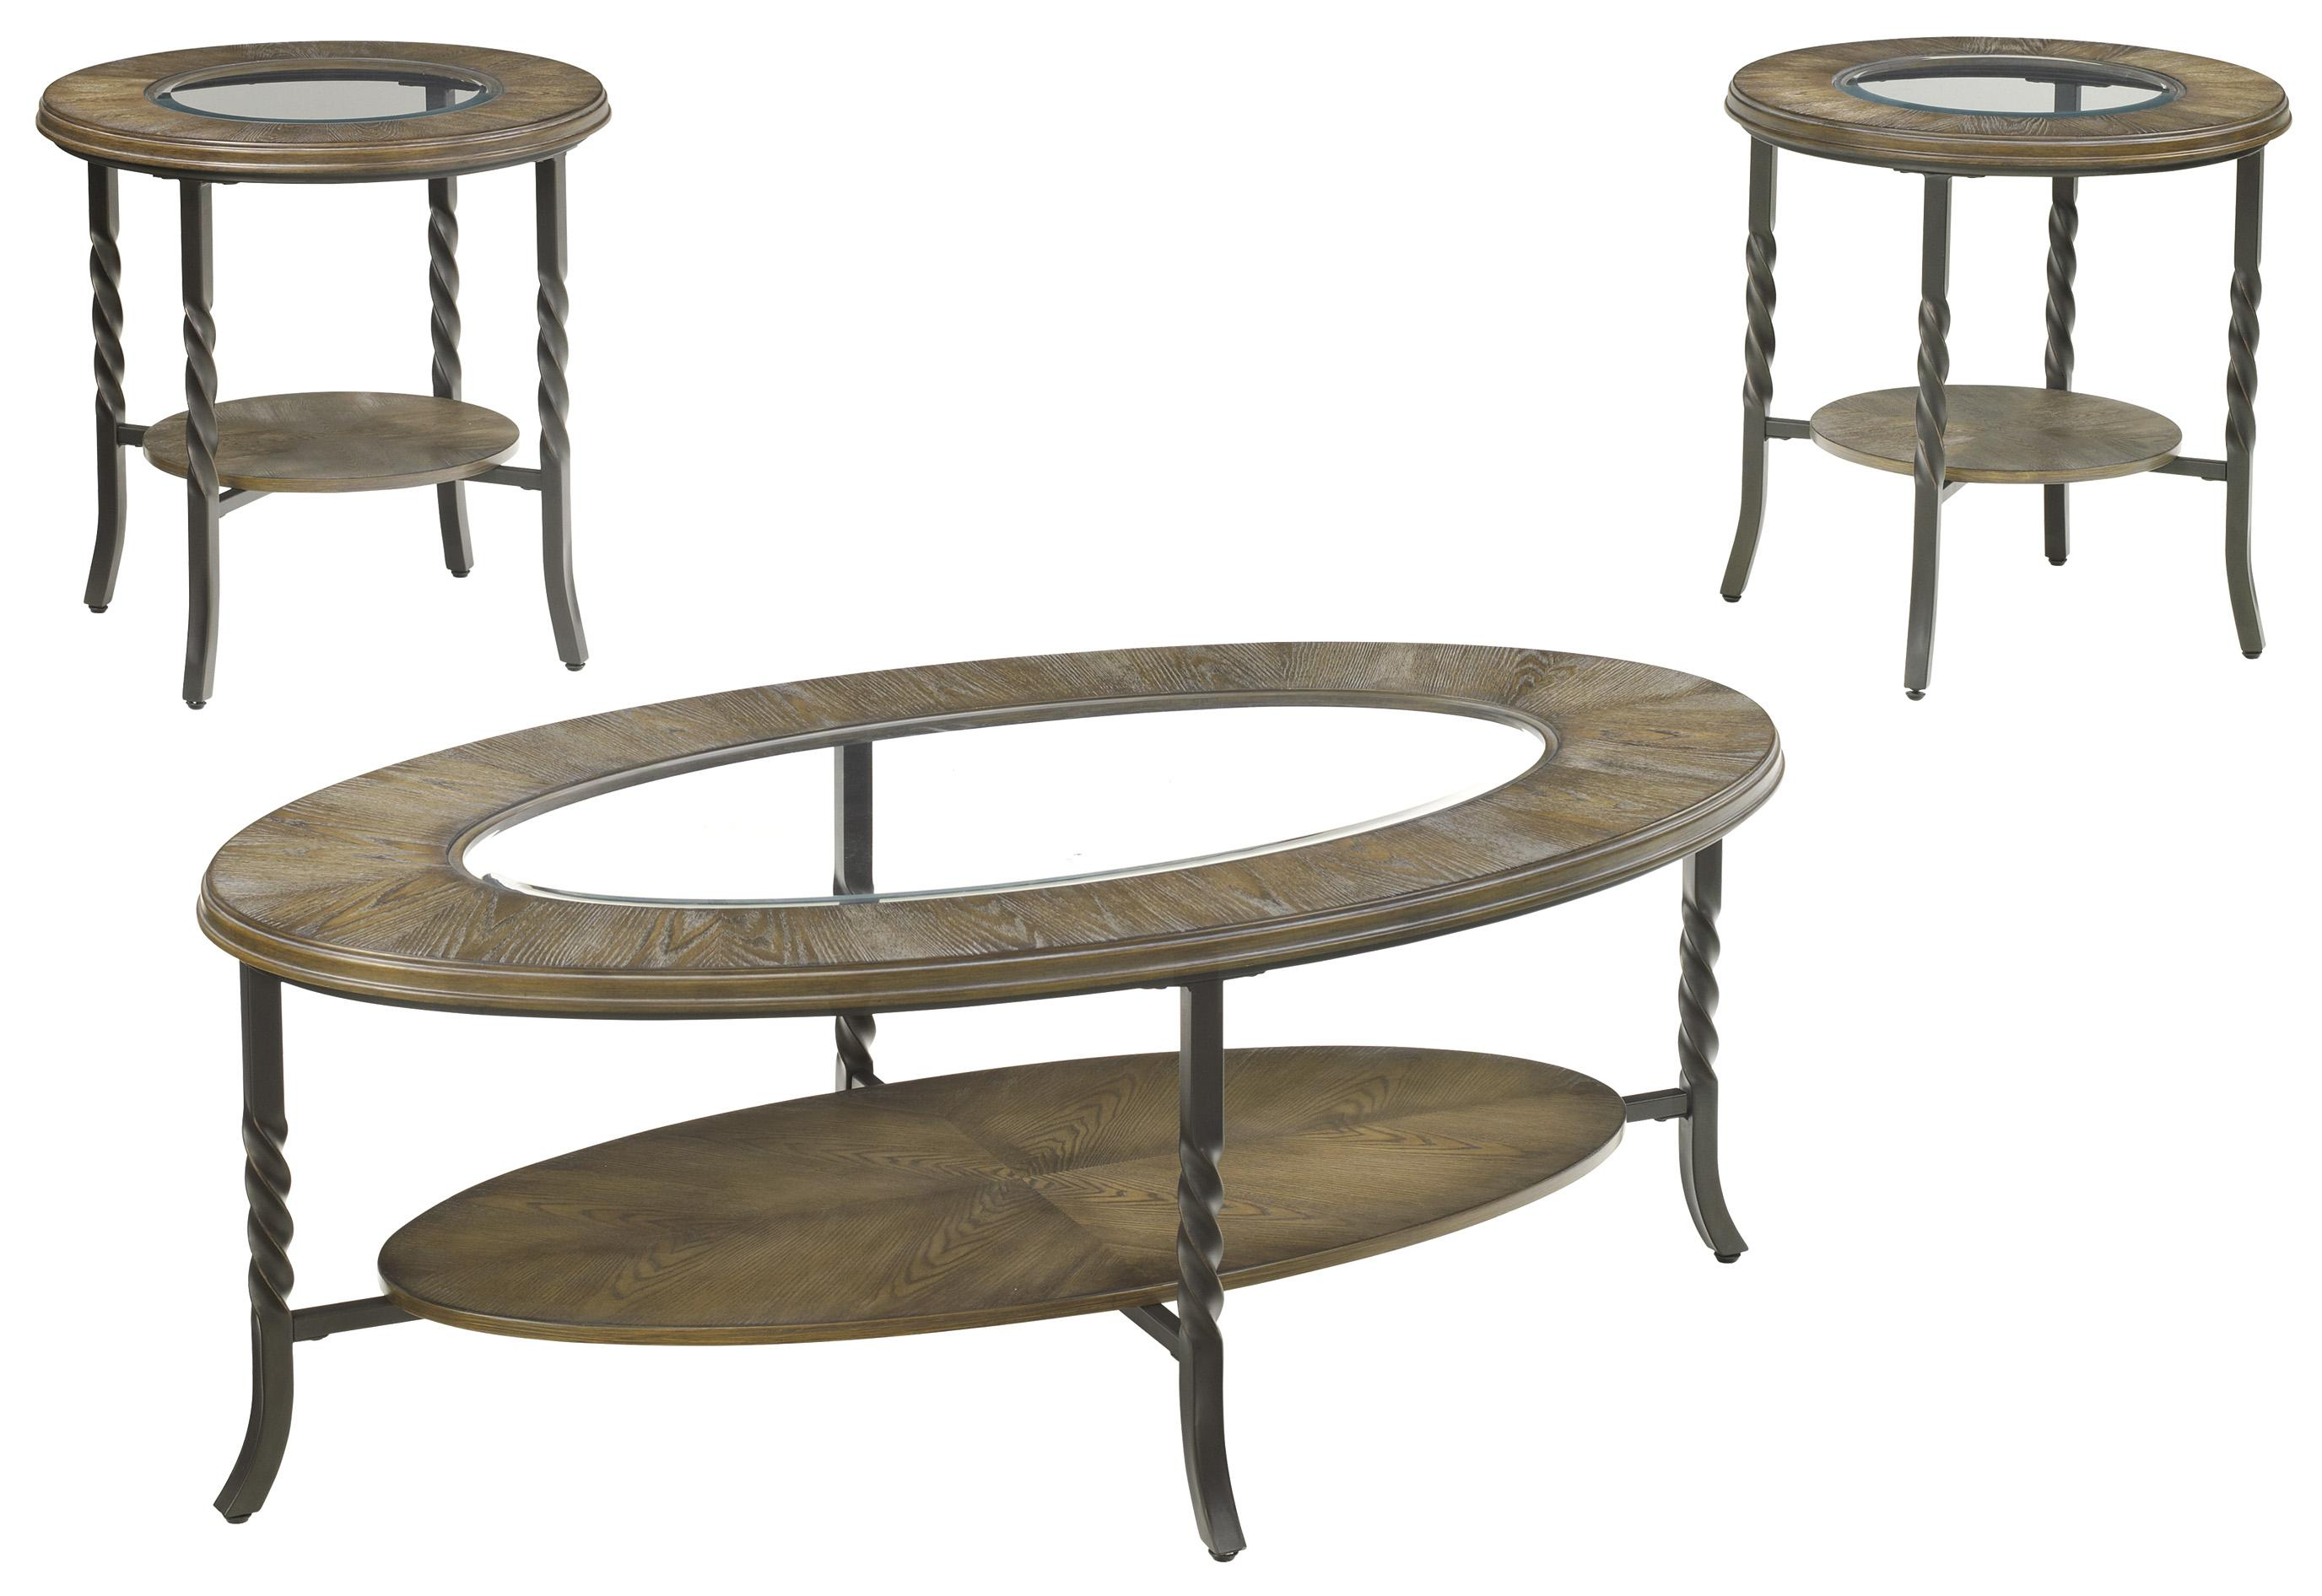 Signature Design by Ashley Brudelli 3-Piece Occasional Table Set - Item Number: T474-13